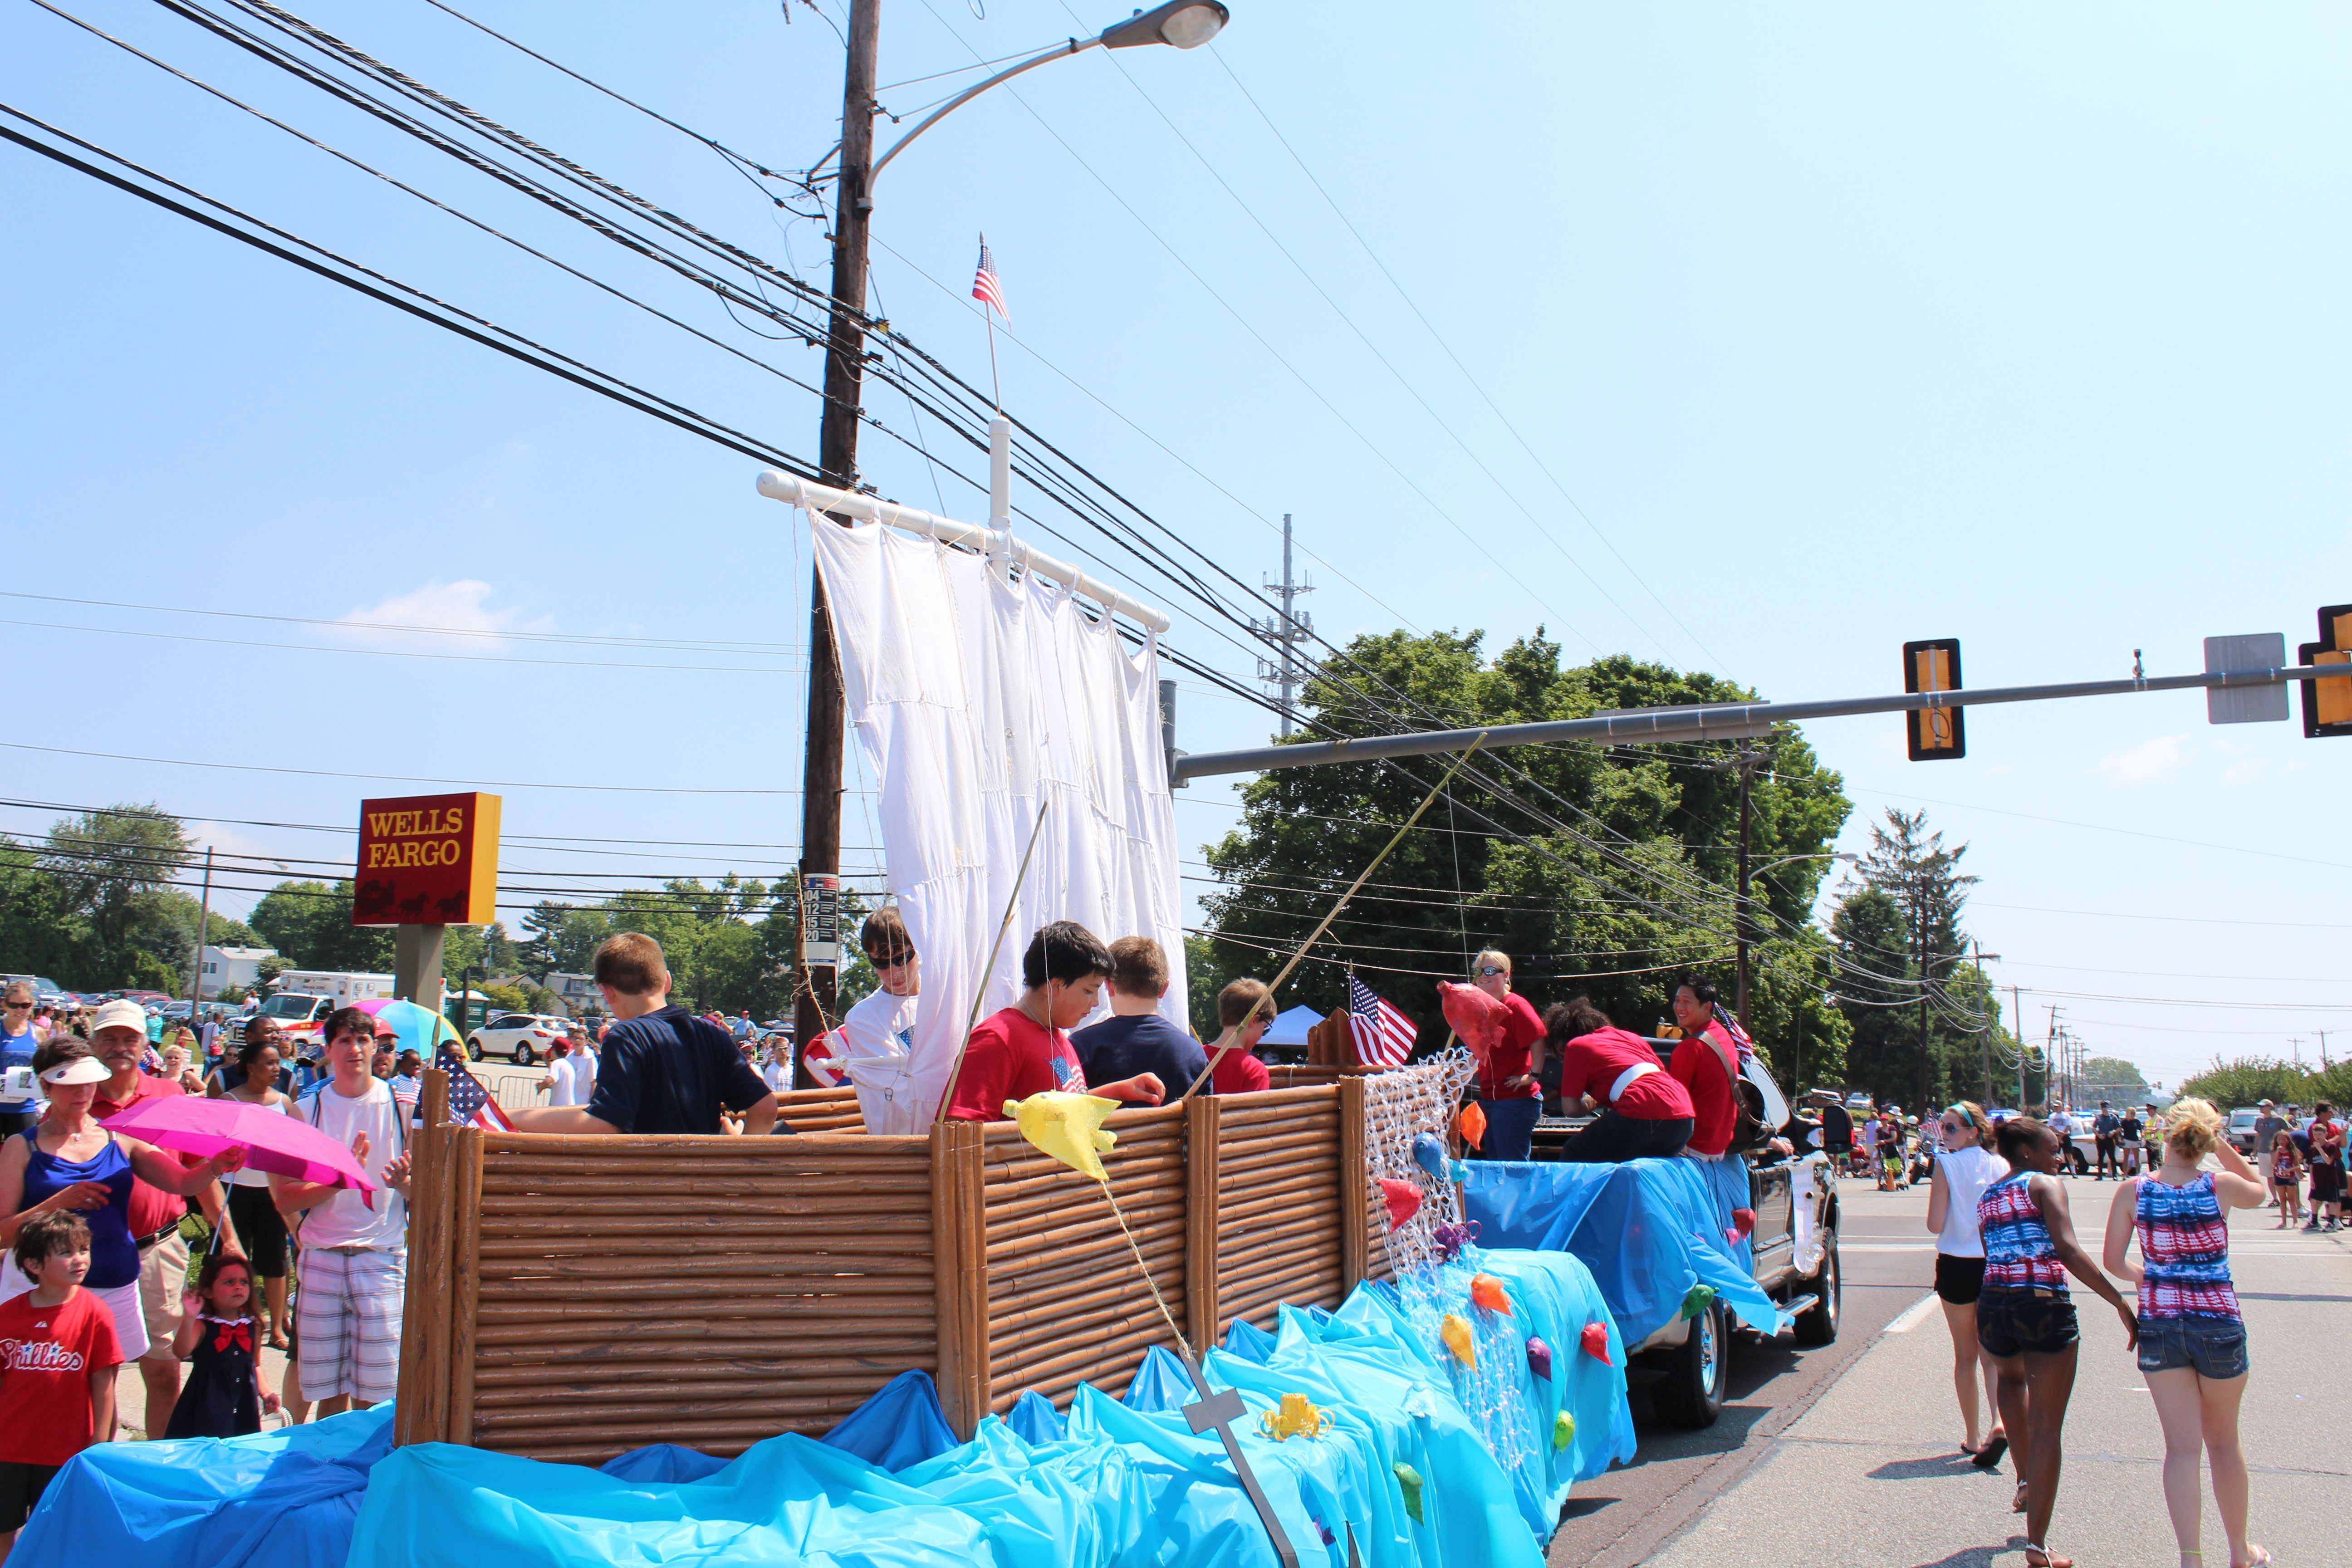 Parade float is a Galilean Fishing Boat made from paper towel tubes